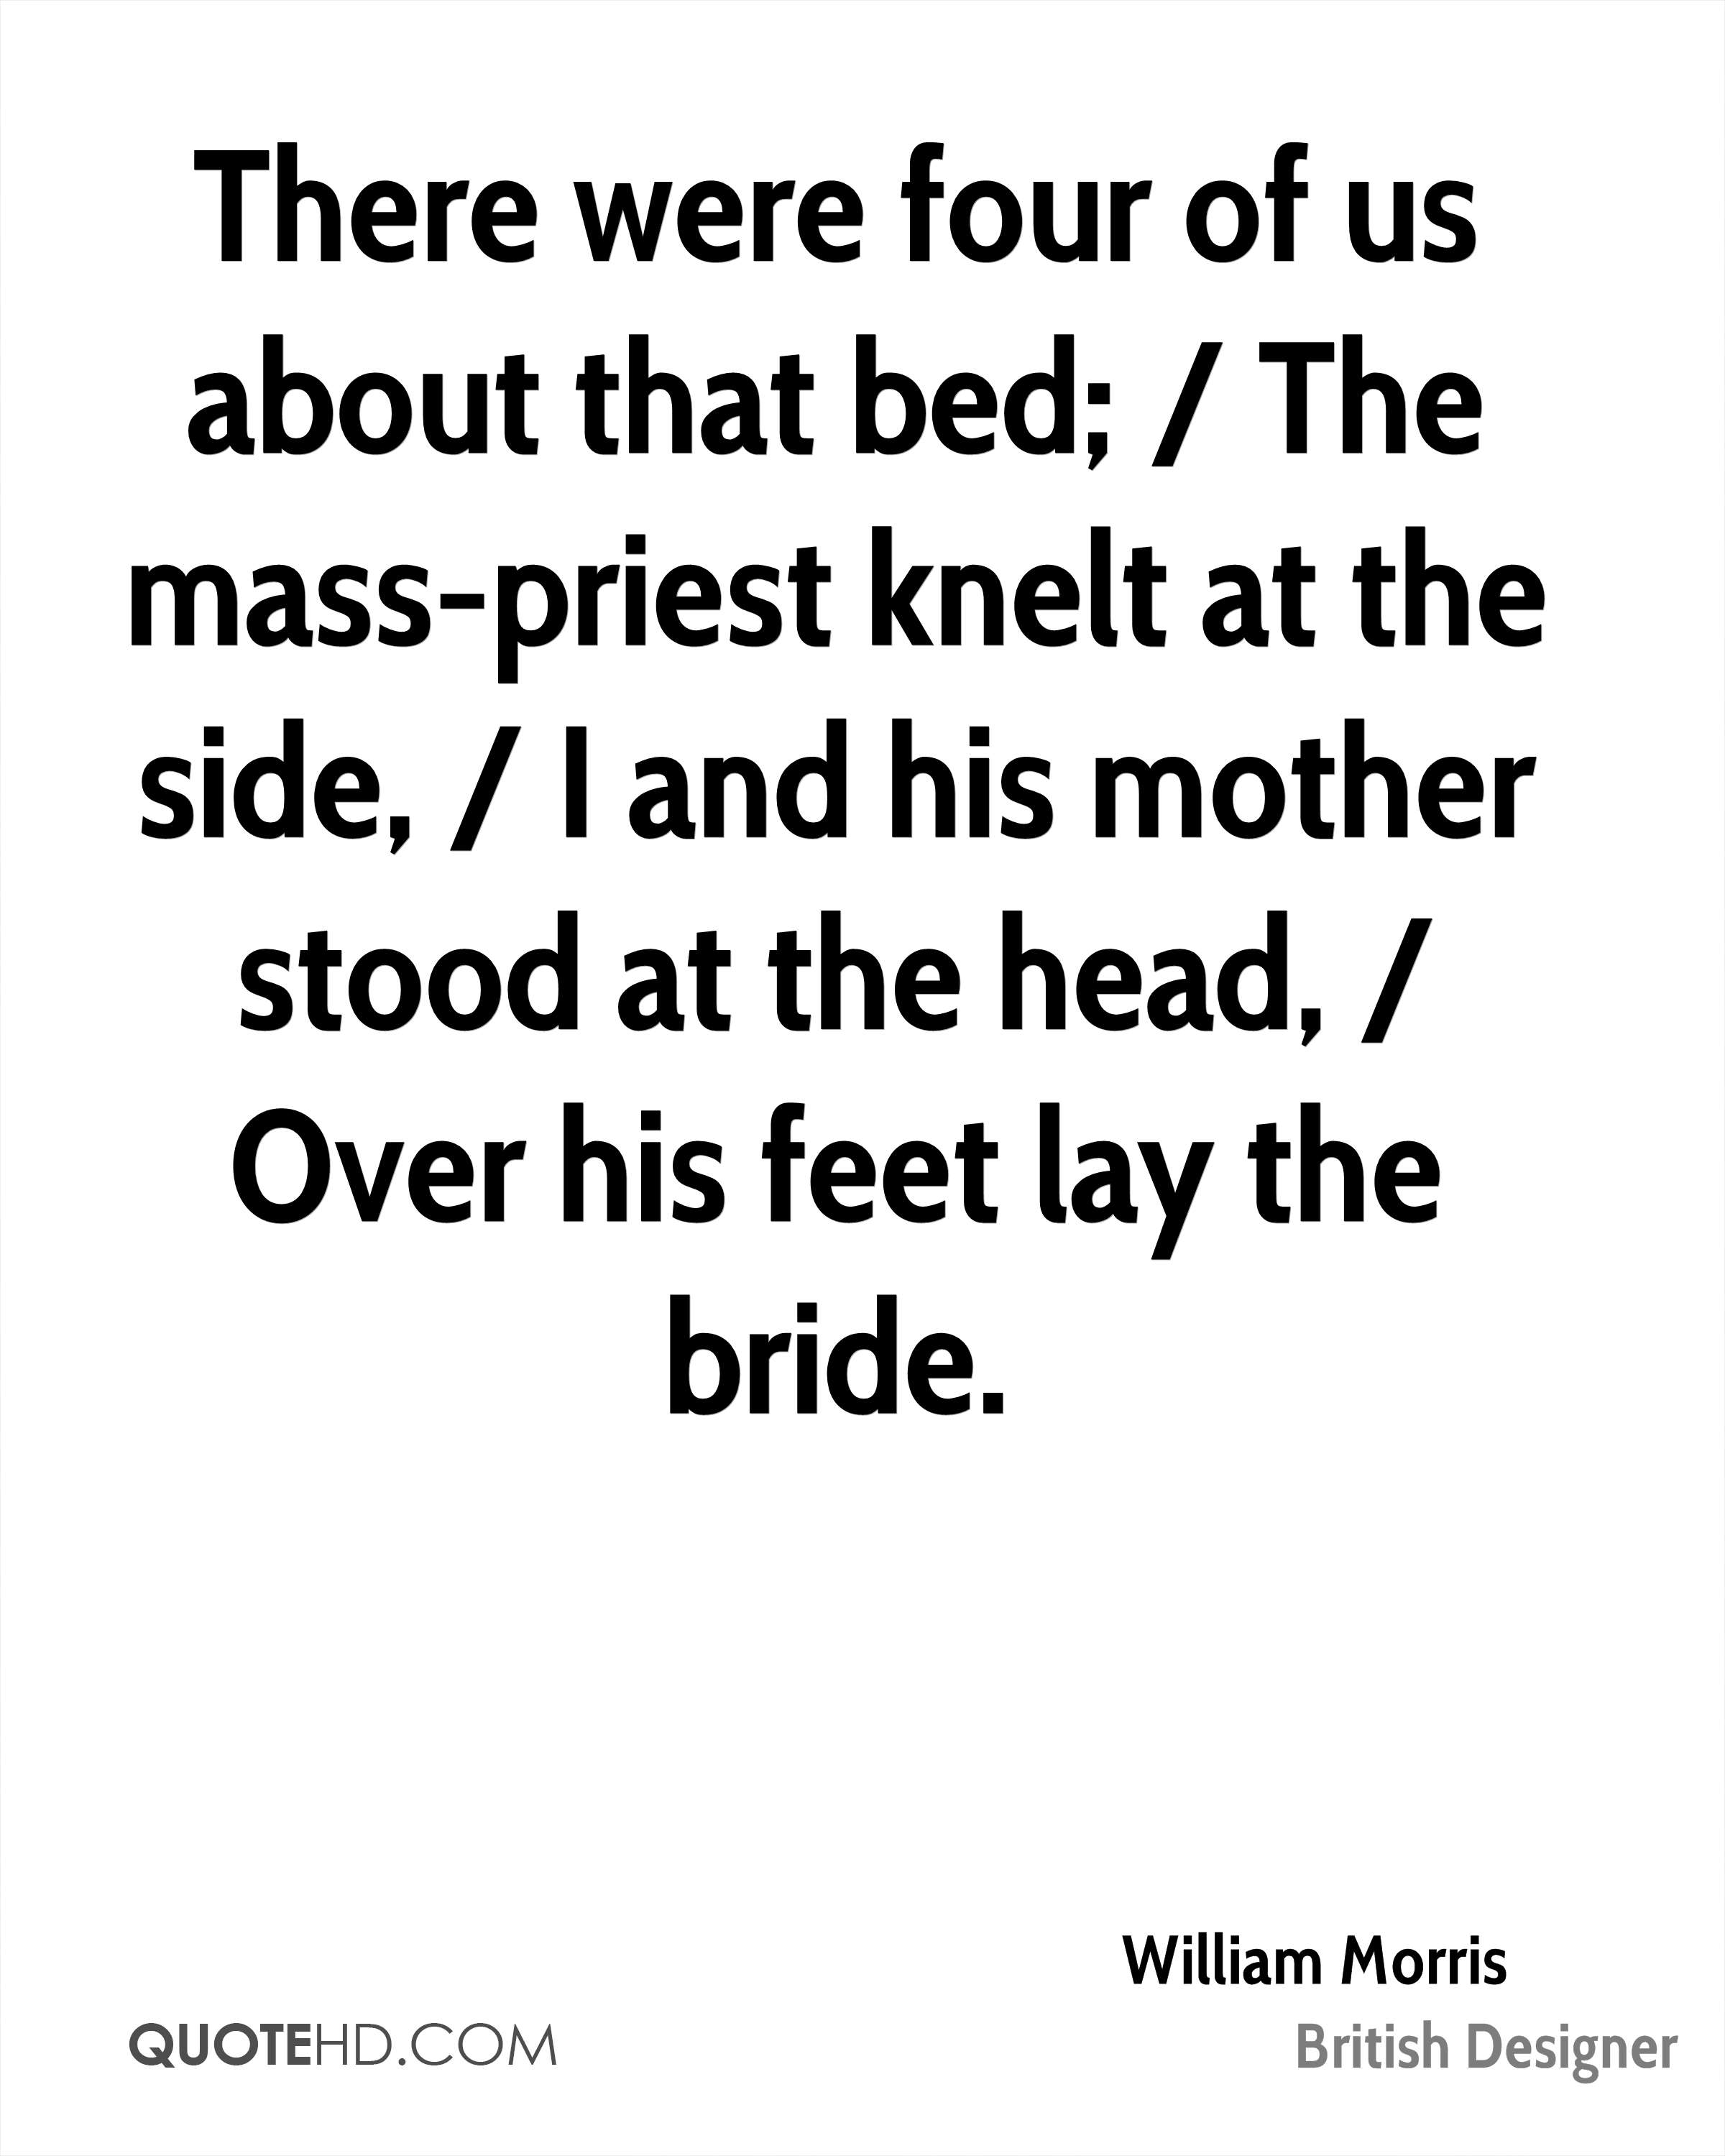 There were four of us about that bed; / The mass-priest knelt at the side, / I and his mother stood at the head, / Over his feet lay the bride.